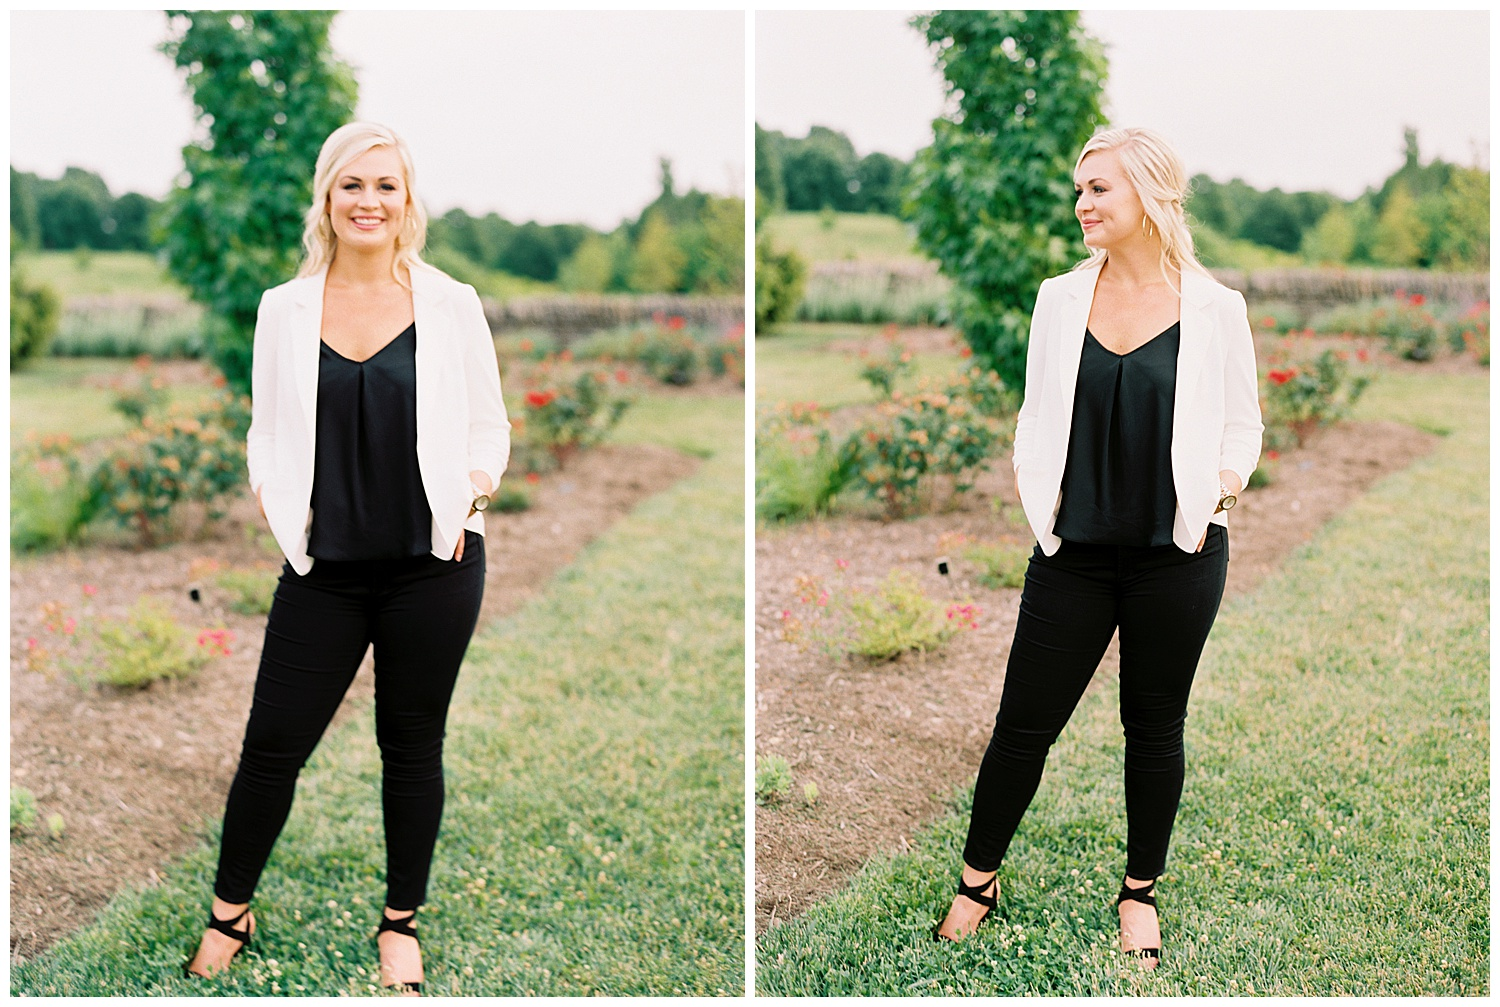 LOOK AT THIS BOSS BABE! One thing I absolutely adore about Morgan, is that she, like myself, is also a fellow small business owner! She is the owner of a wildly successful clothing boutique in Stanford, KY called  Morgan's On Main ! Her style is so gorgeous, and she's basically a full on rockstar for running such an amazing business!